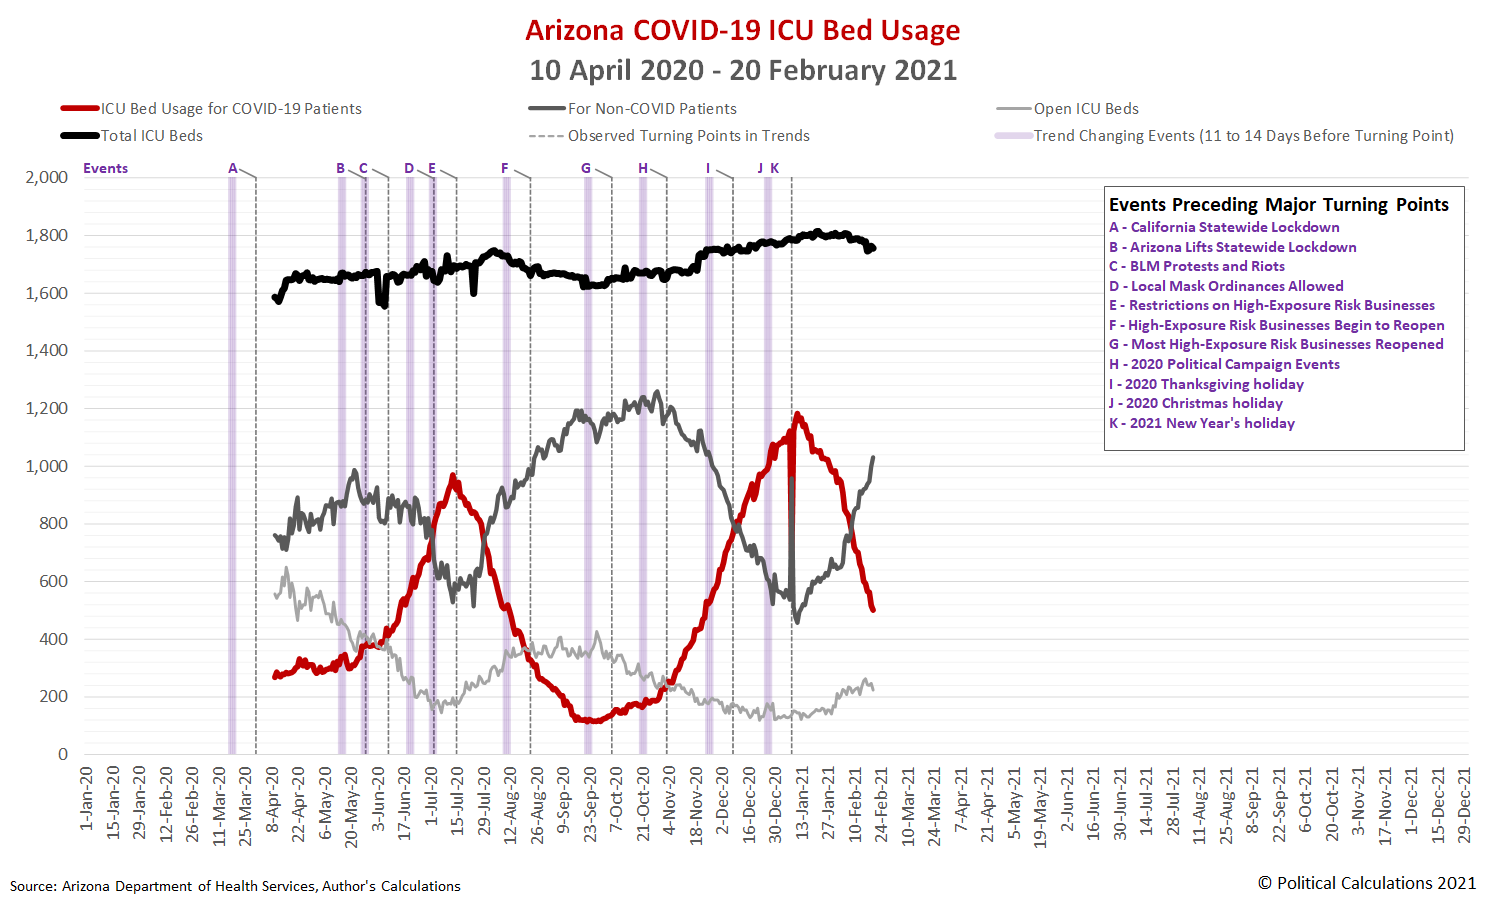 Arizona ICU Bed Usage, 10 April 2020 through 20 February 2021